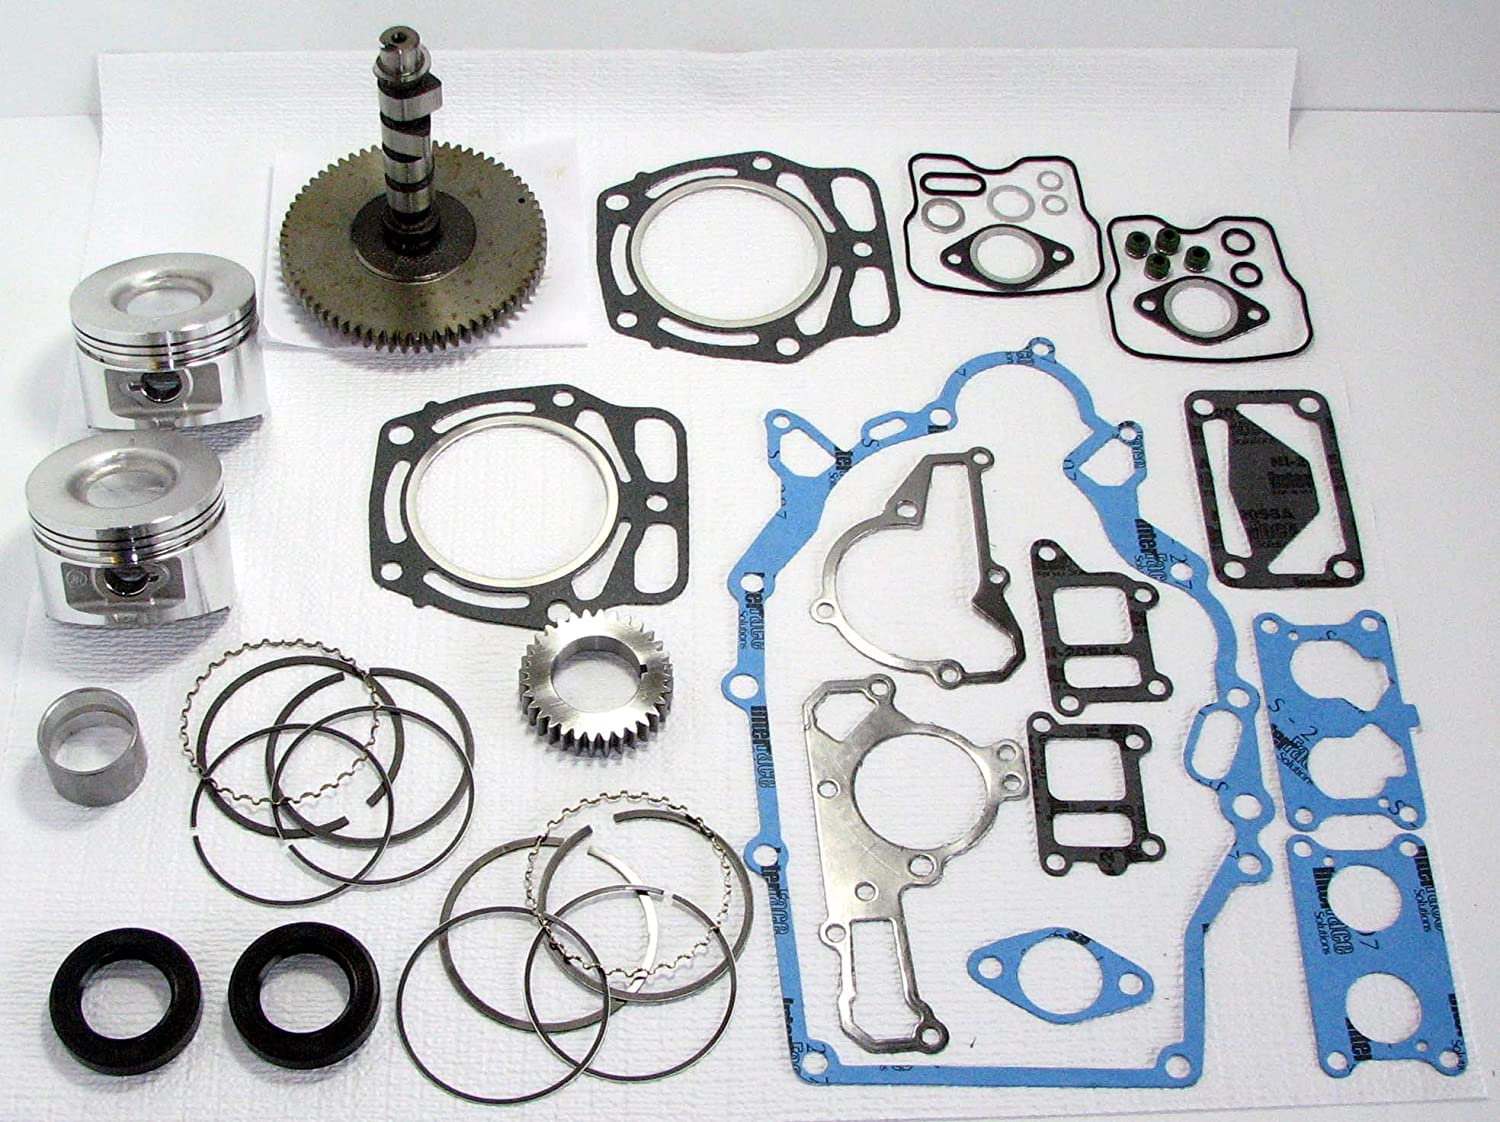 Amazon.com: Kawasaki FD620/John Deere 425, 445, 455 Engine Rebuild Kit with  Camshaft and Pistons: Automotive